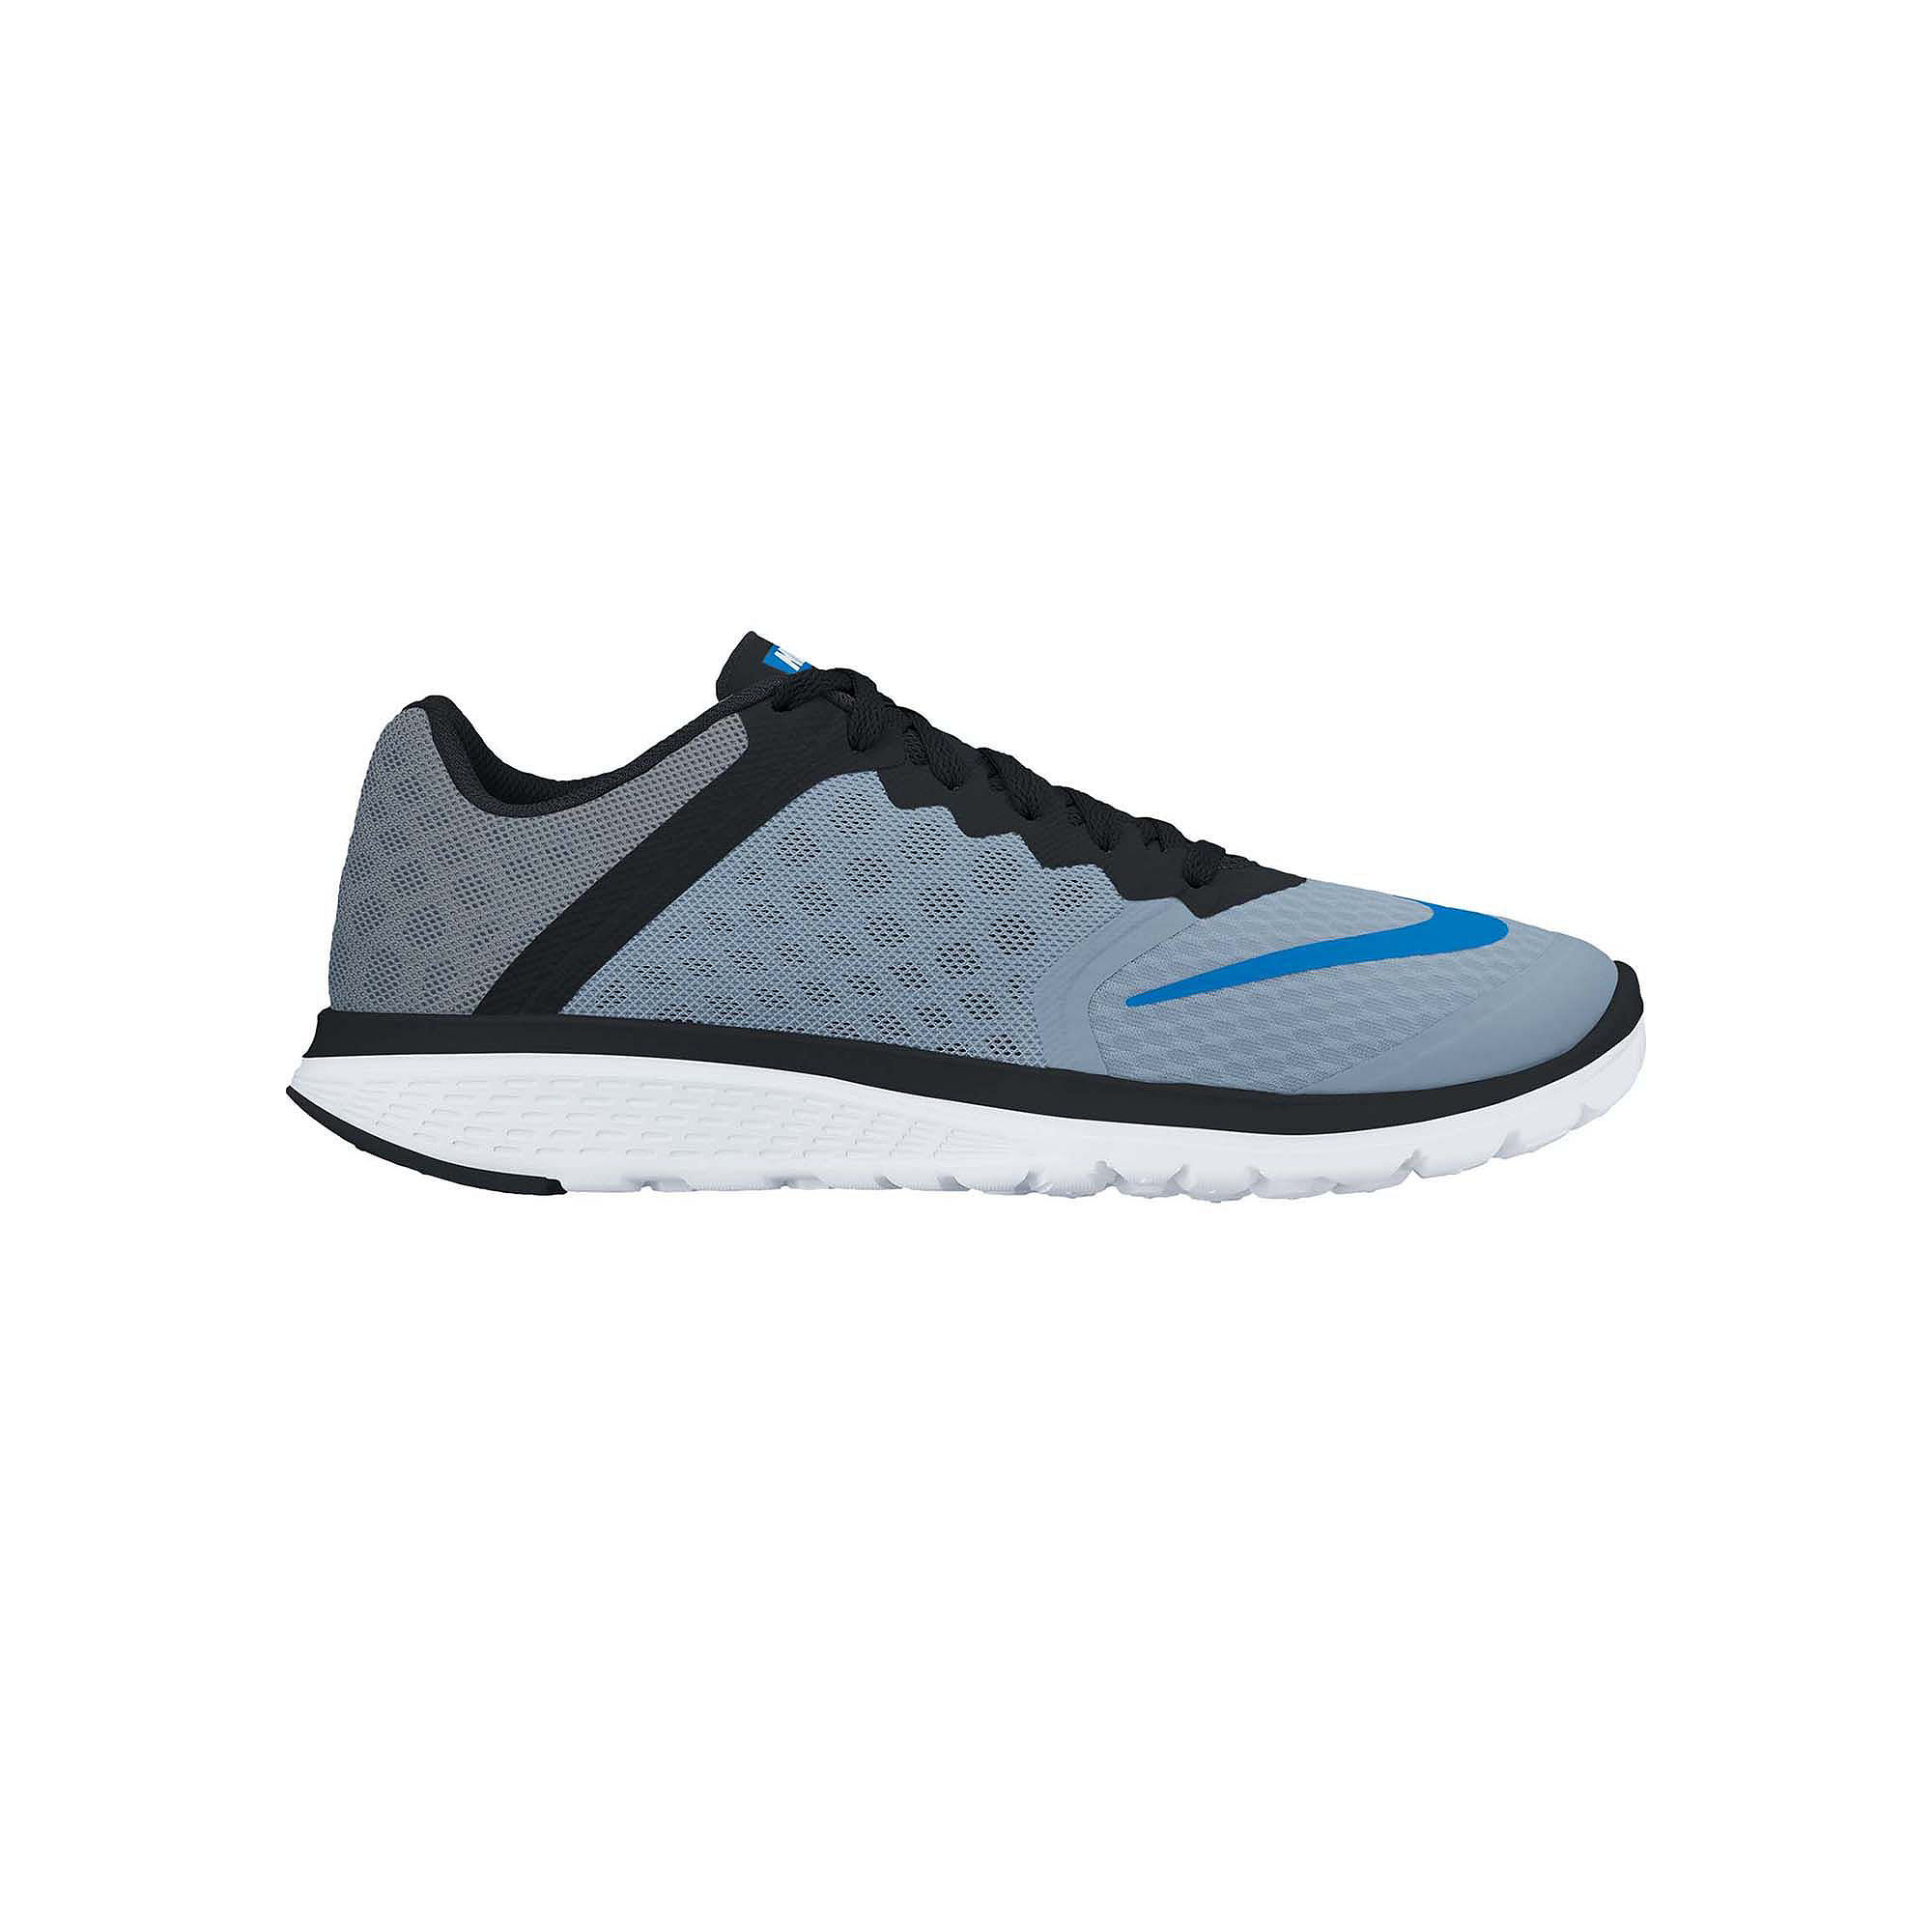 Cheap Nike FREE RUN ( 2) PRM LTR NRG